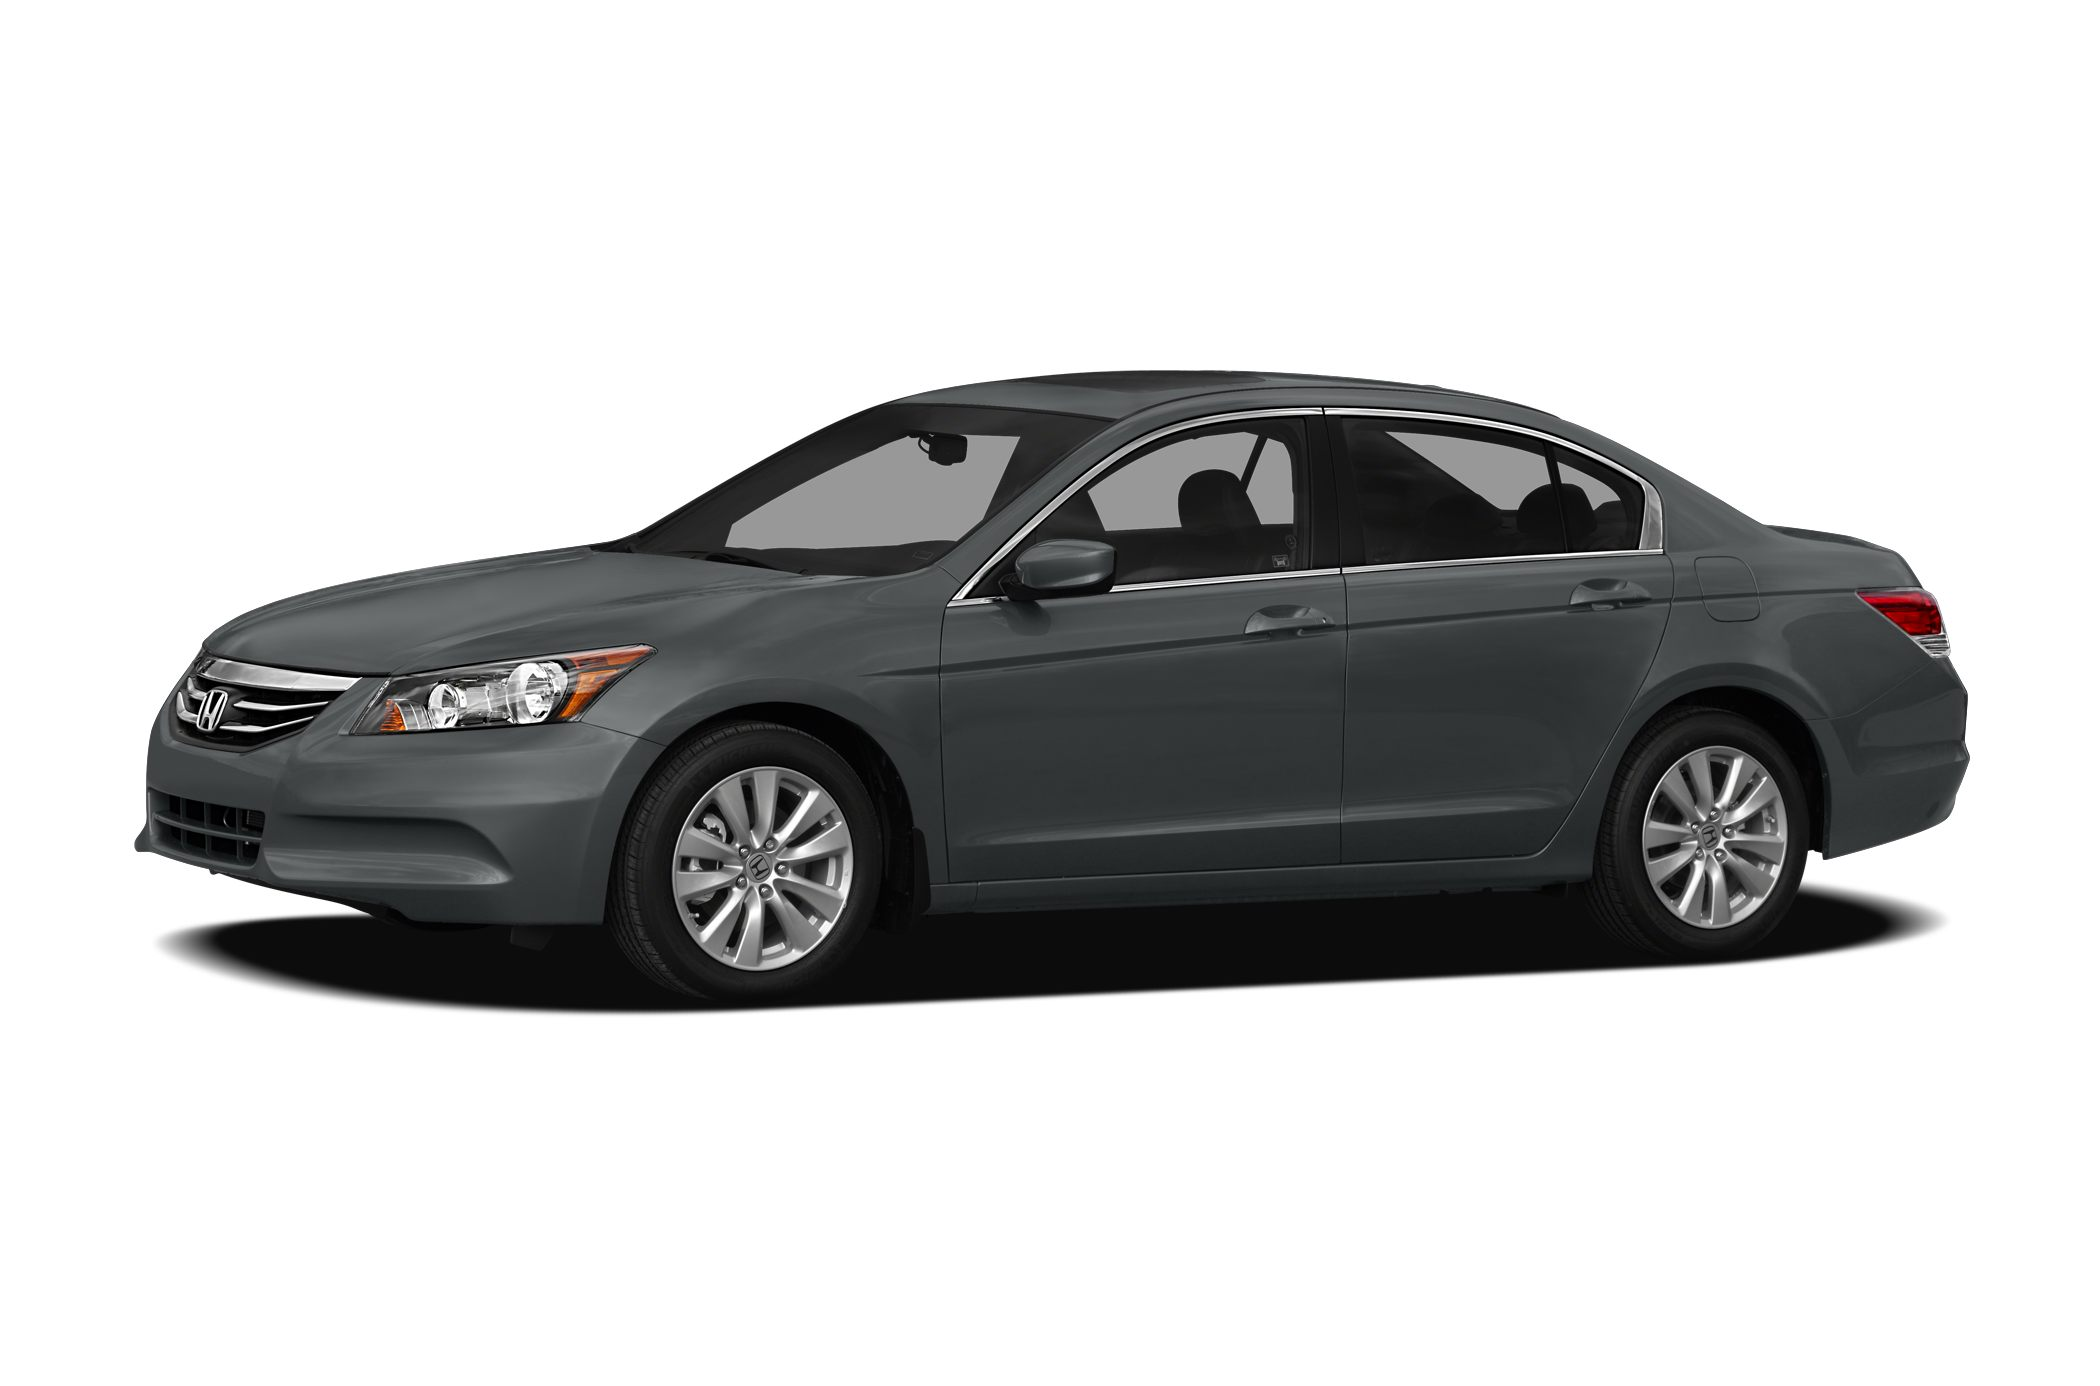 2012 Honda Accord SE Sedan for sale in Danville for $18,991 with 34,012 miles